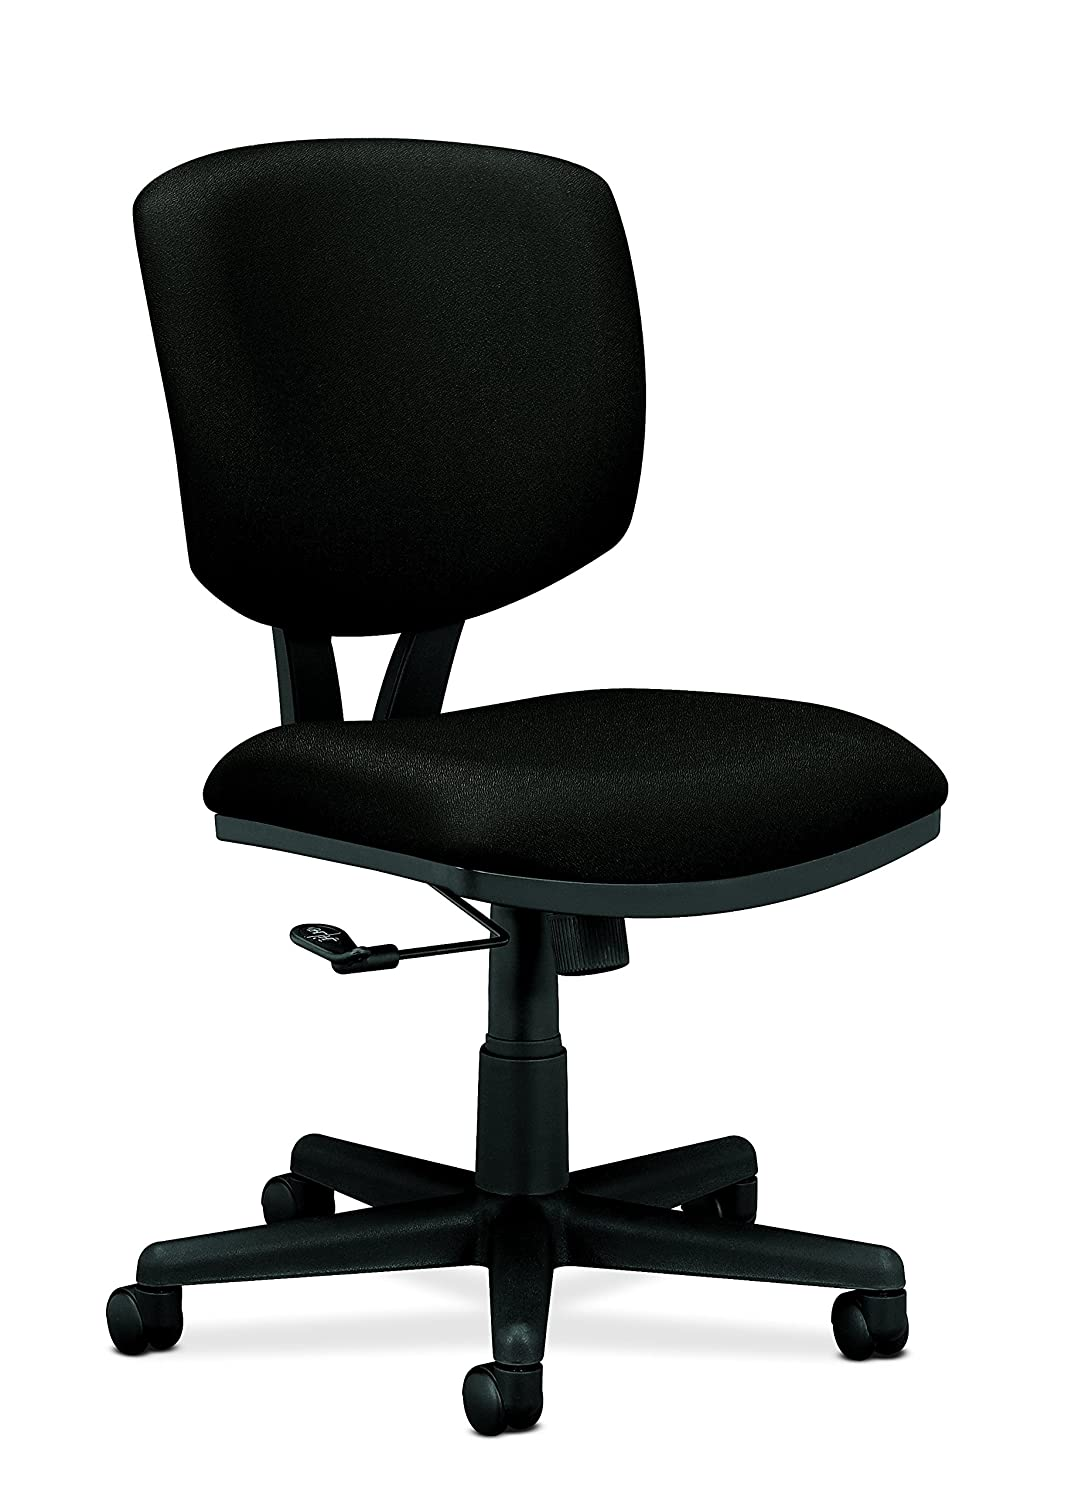 HON Volt Task Chair - Computer Chair for Office Desk, Black (H5701)